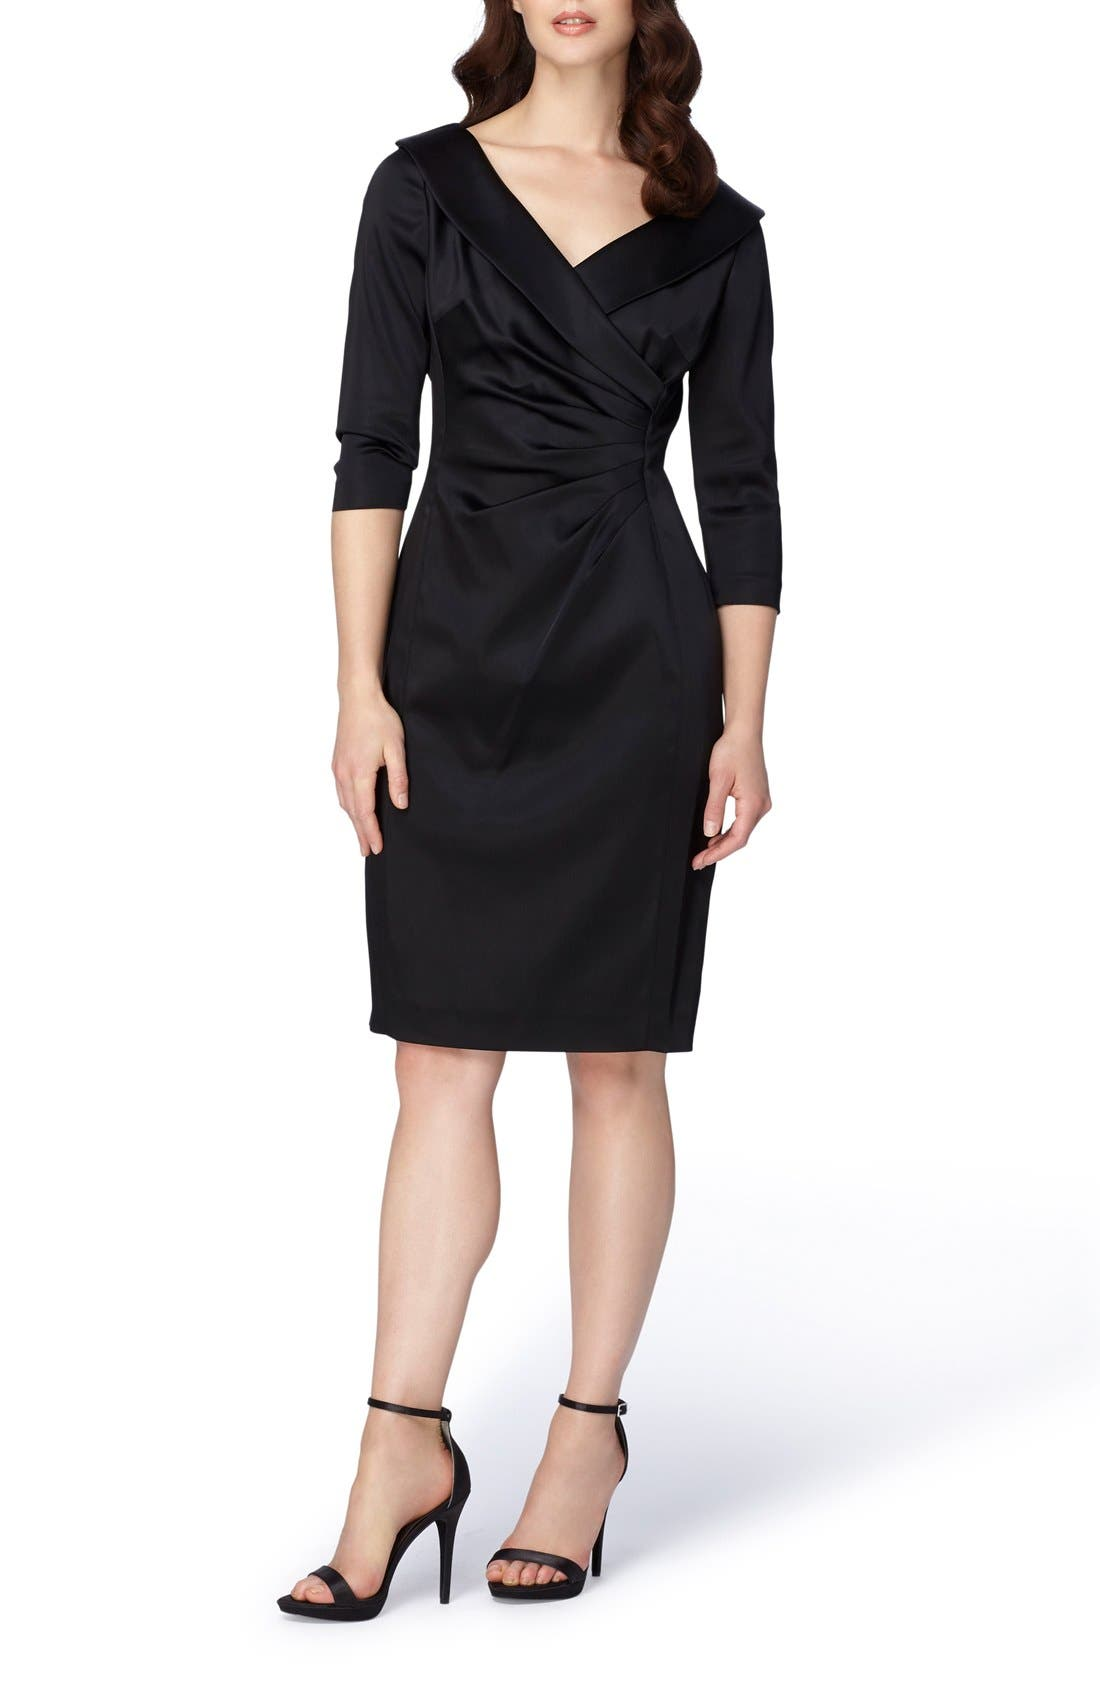 Portrait Collar Satin Sheath Dress,                             Main thumbnail 1, color,                             001